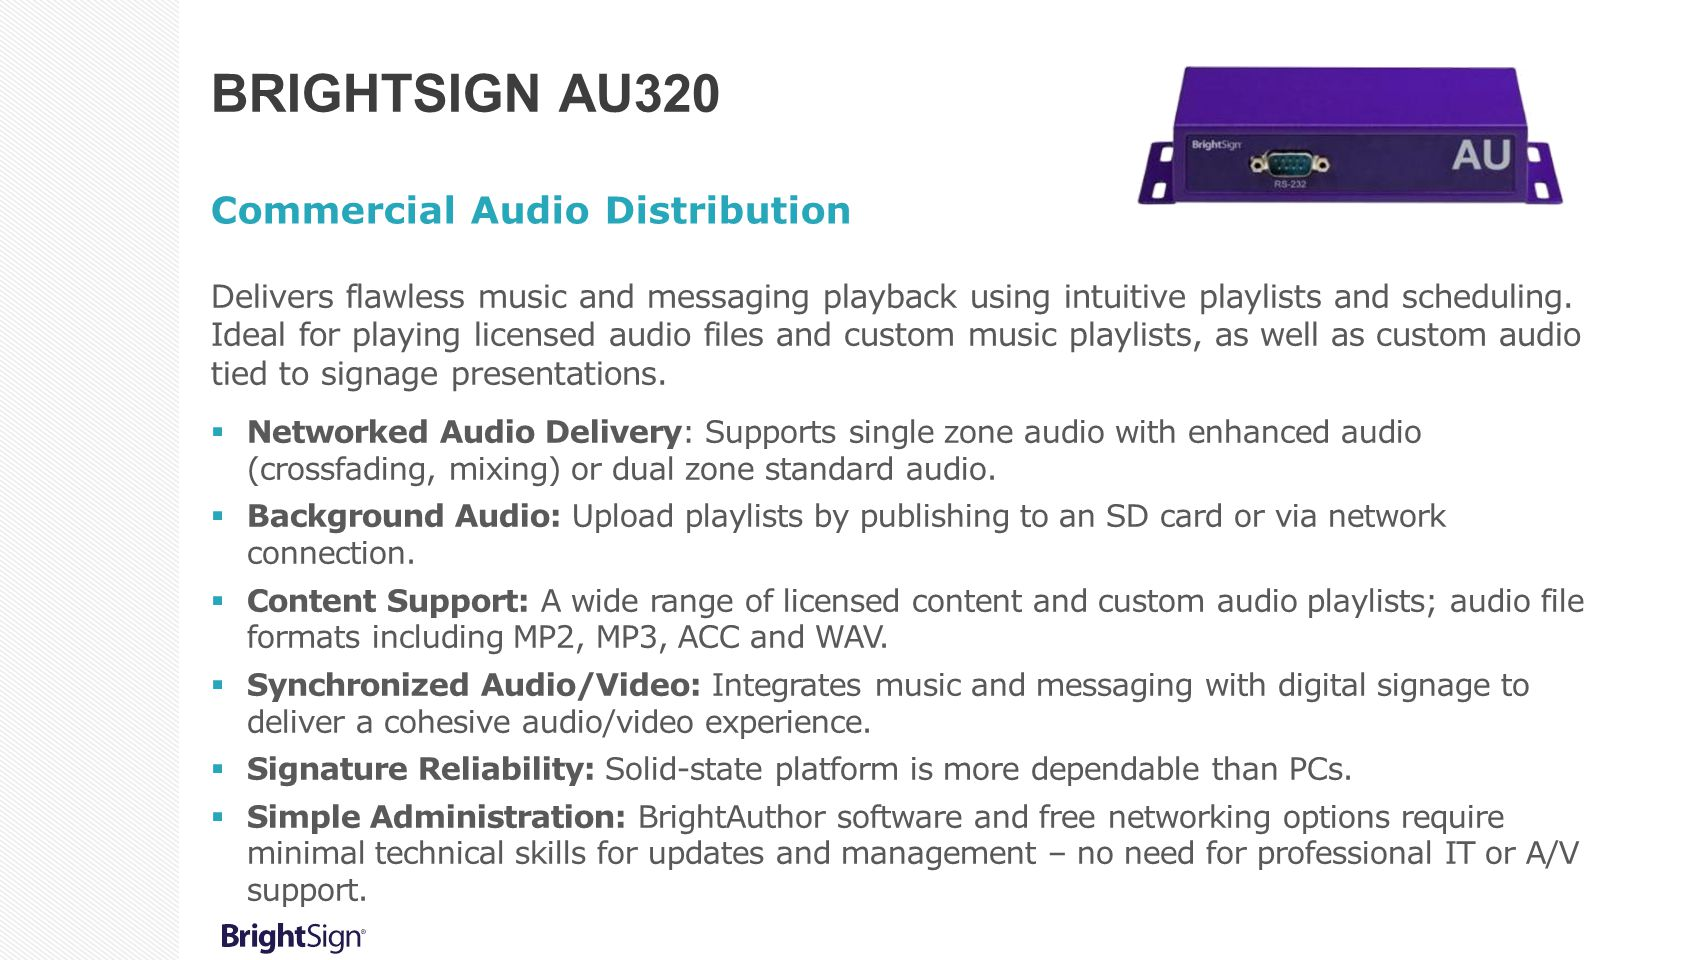 BrightSign AU320 Commercial Audio Distribution